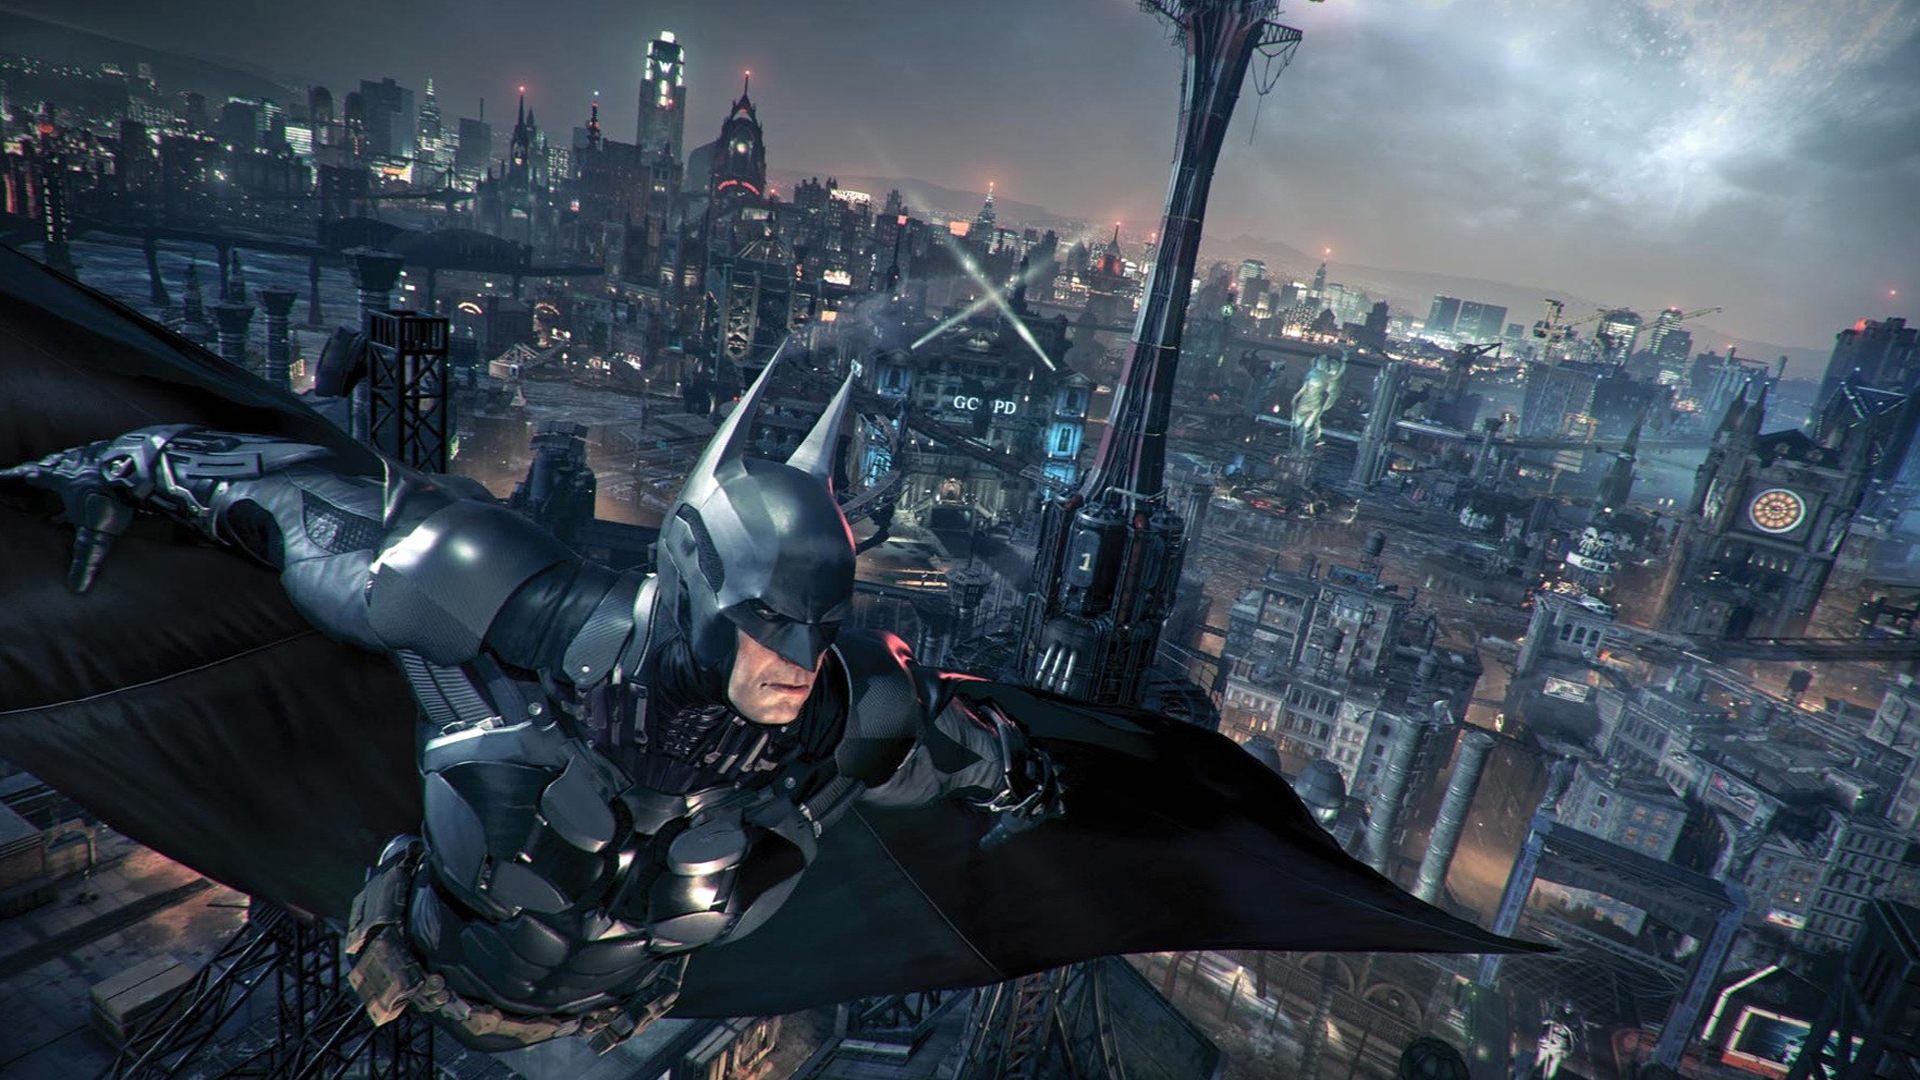 batman arkham knight game hd 1920x1080 1080p wallpaper and compatible 1920x1080